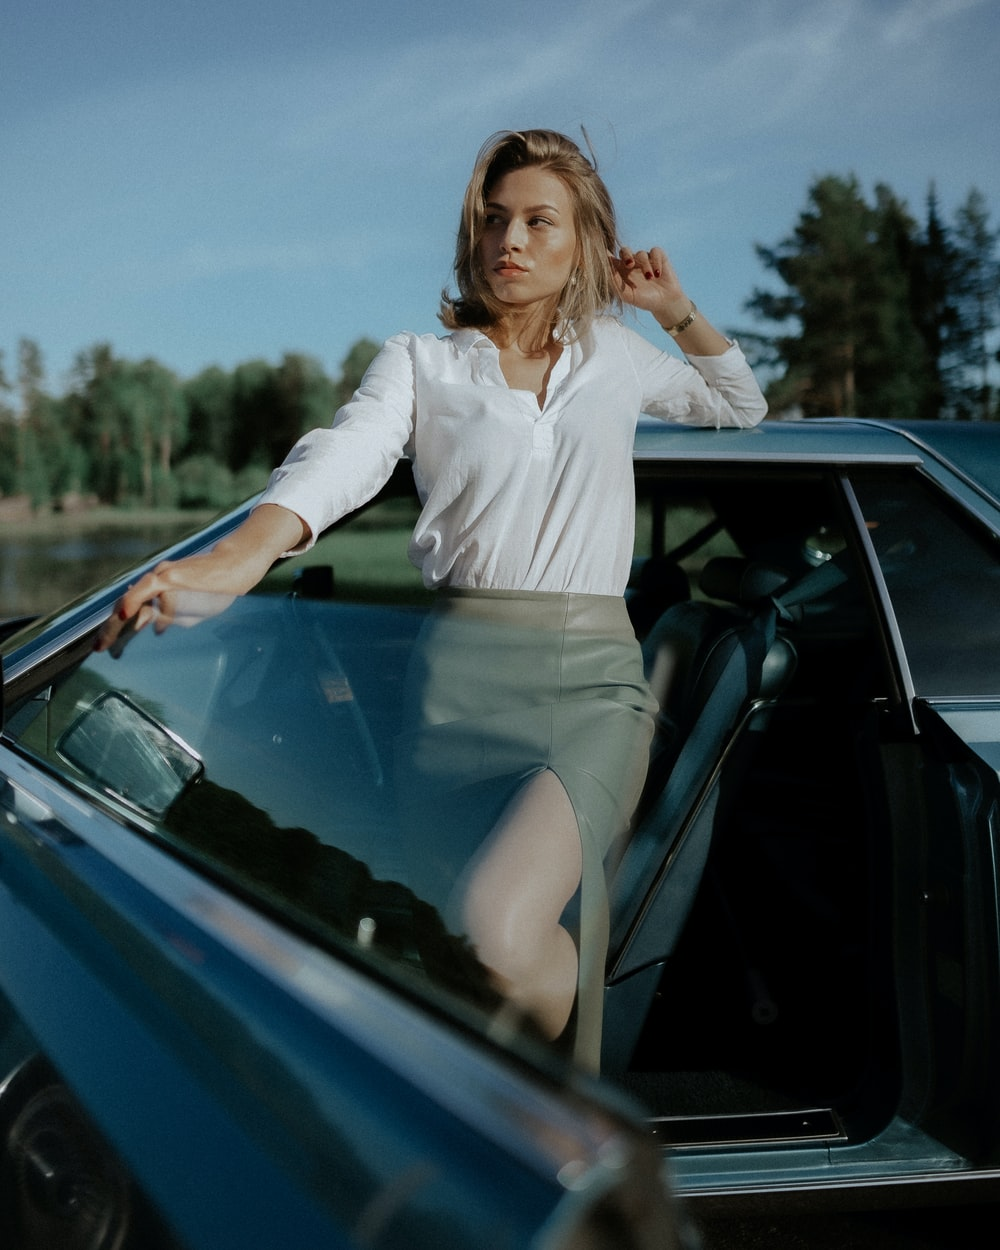 woman in white long sleeve shirt and gray skirt sitting on blue car